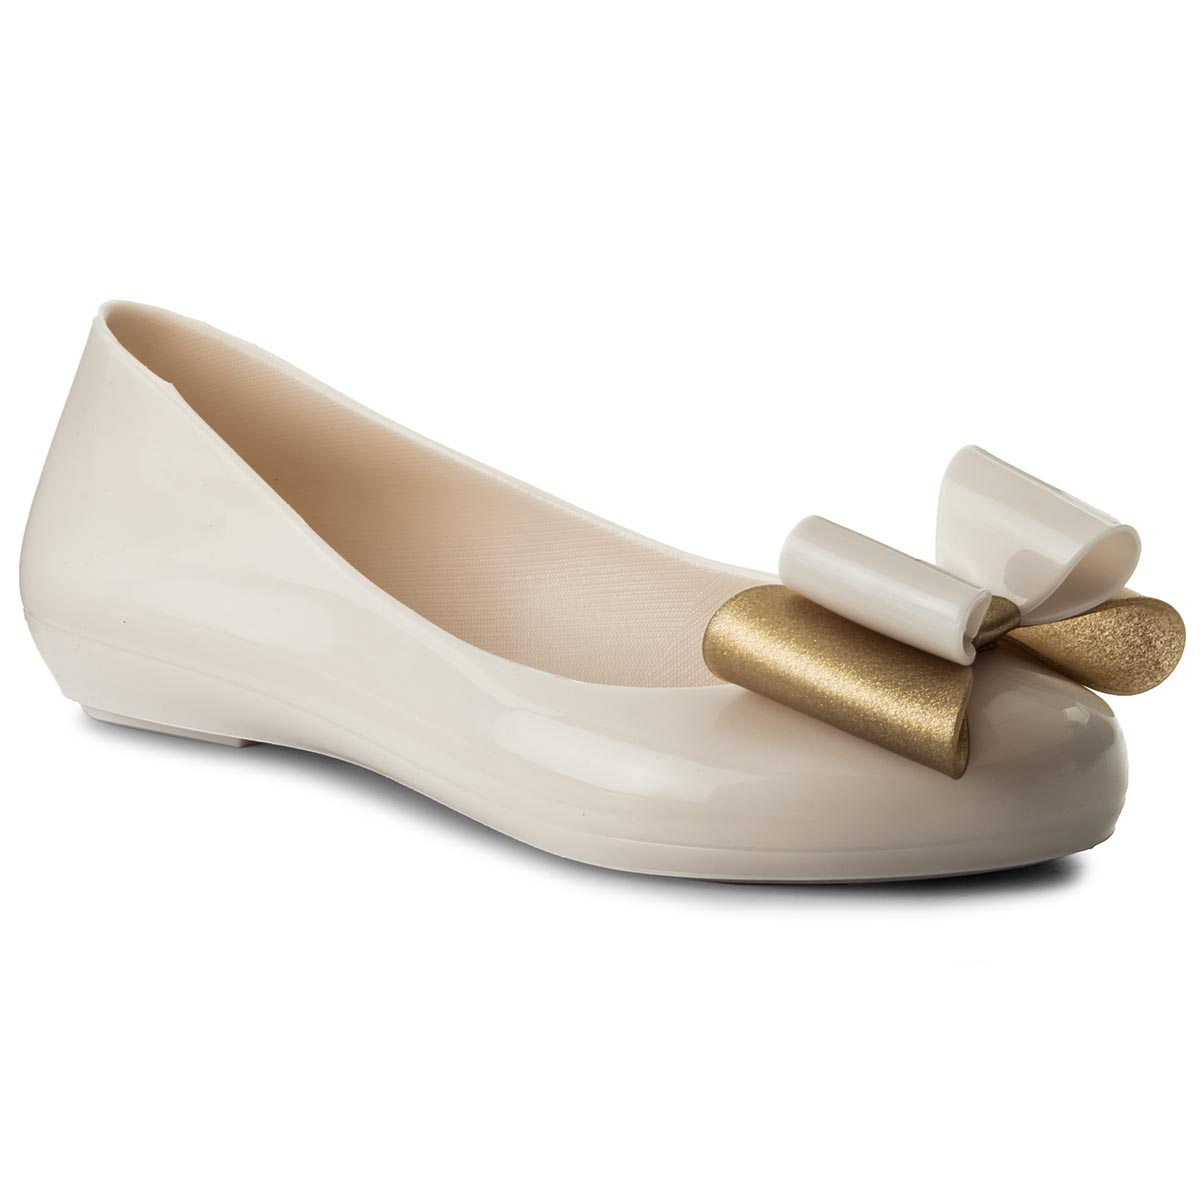 Balerini Zaxy - Pop Bow Ii Fem 82302 Beige 01664 Aa285059 02064 imagine epantofi.ro